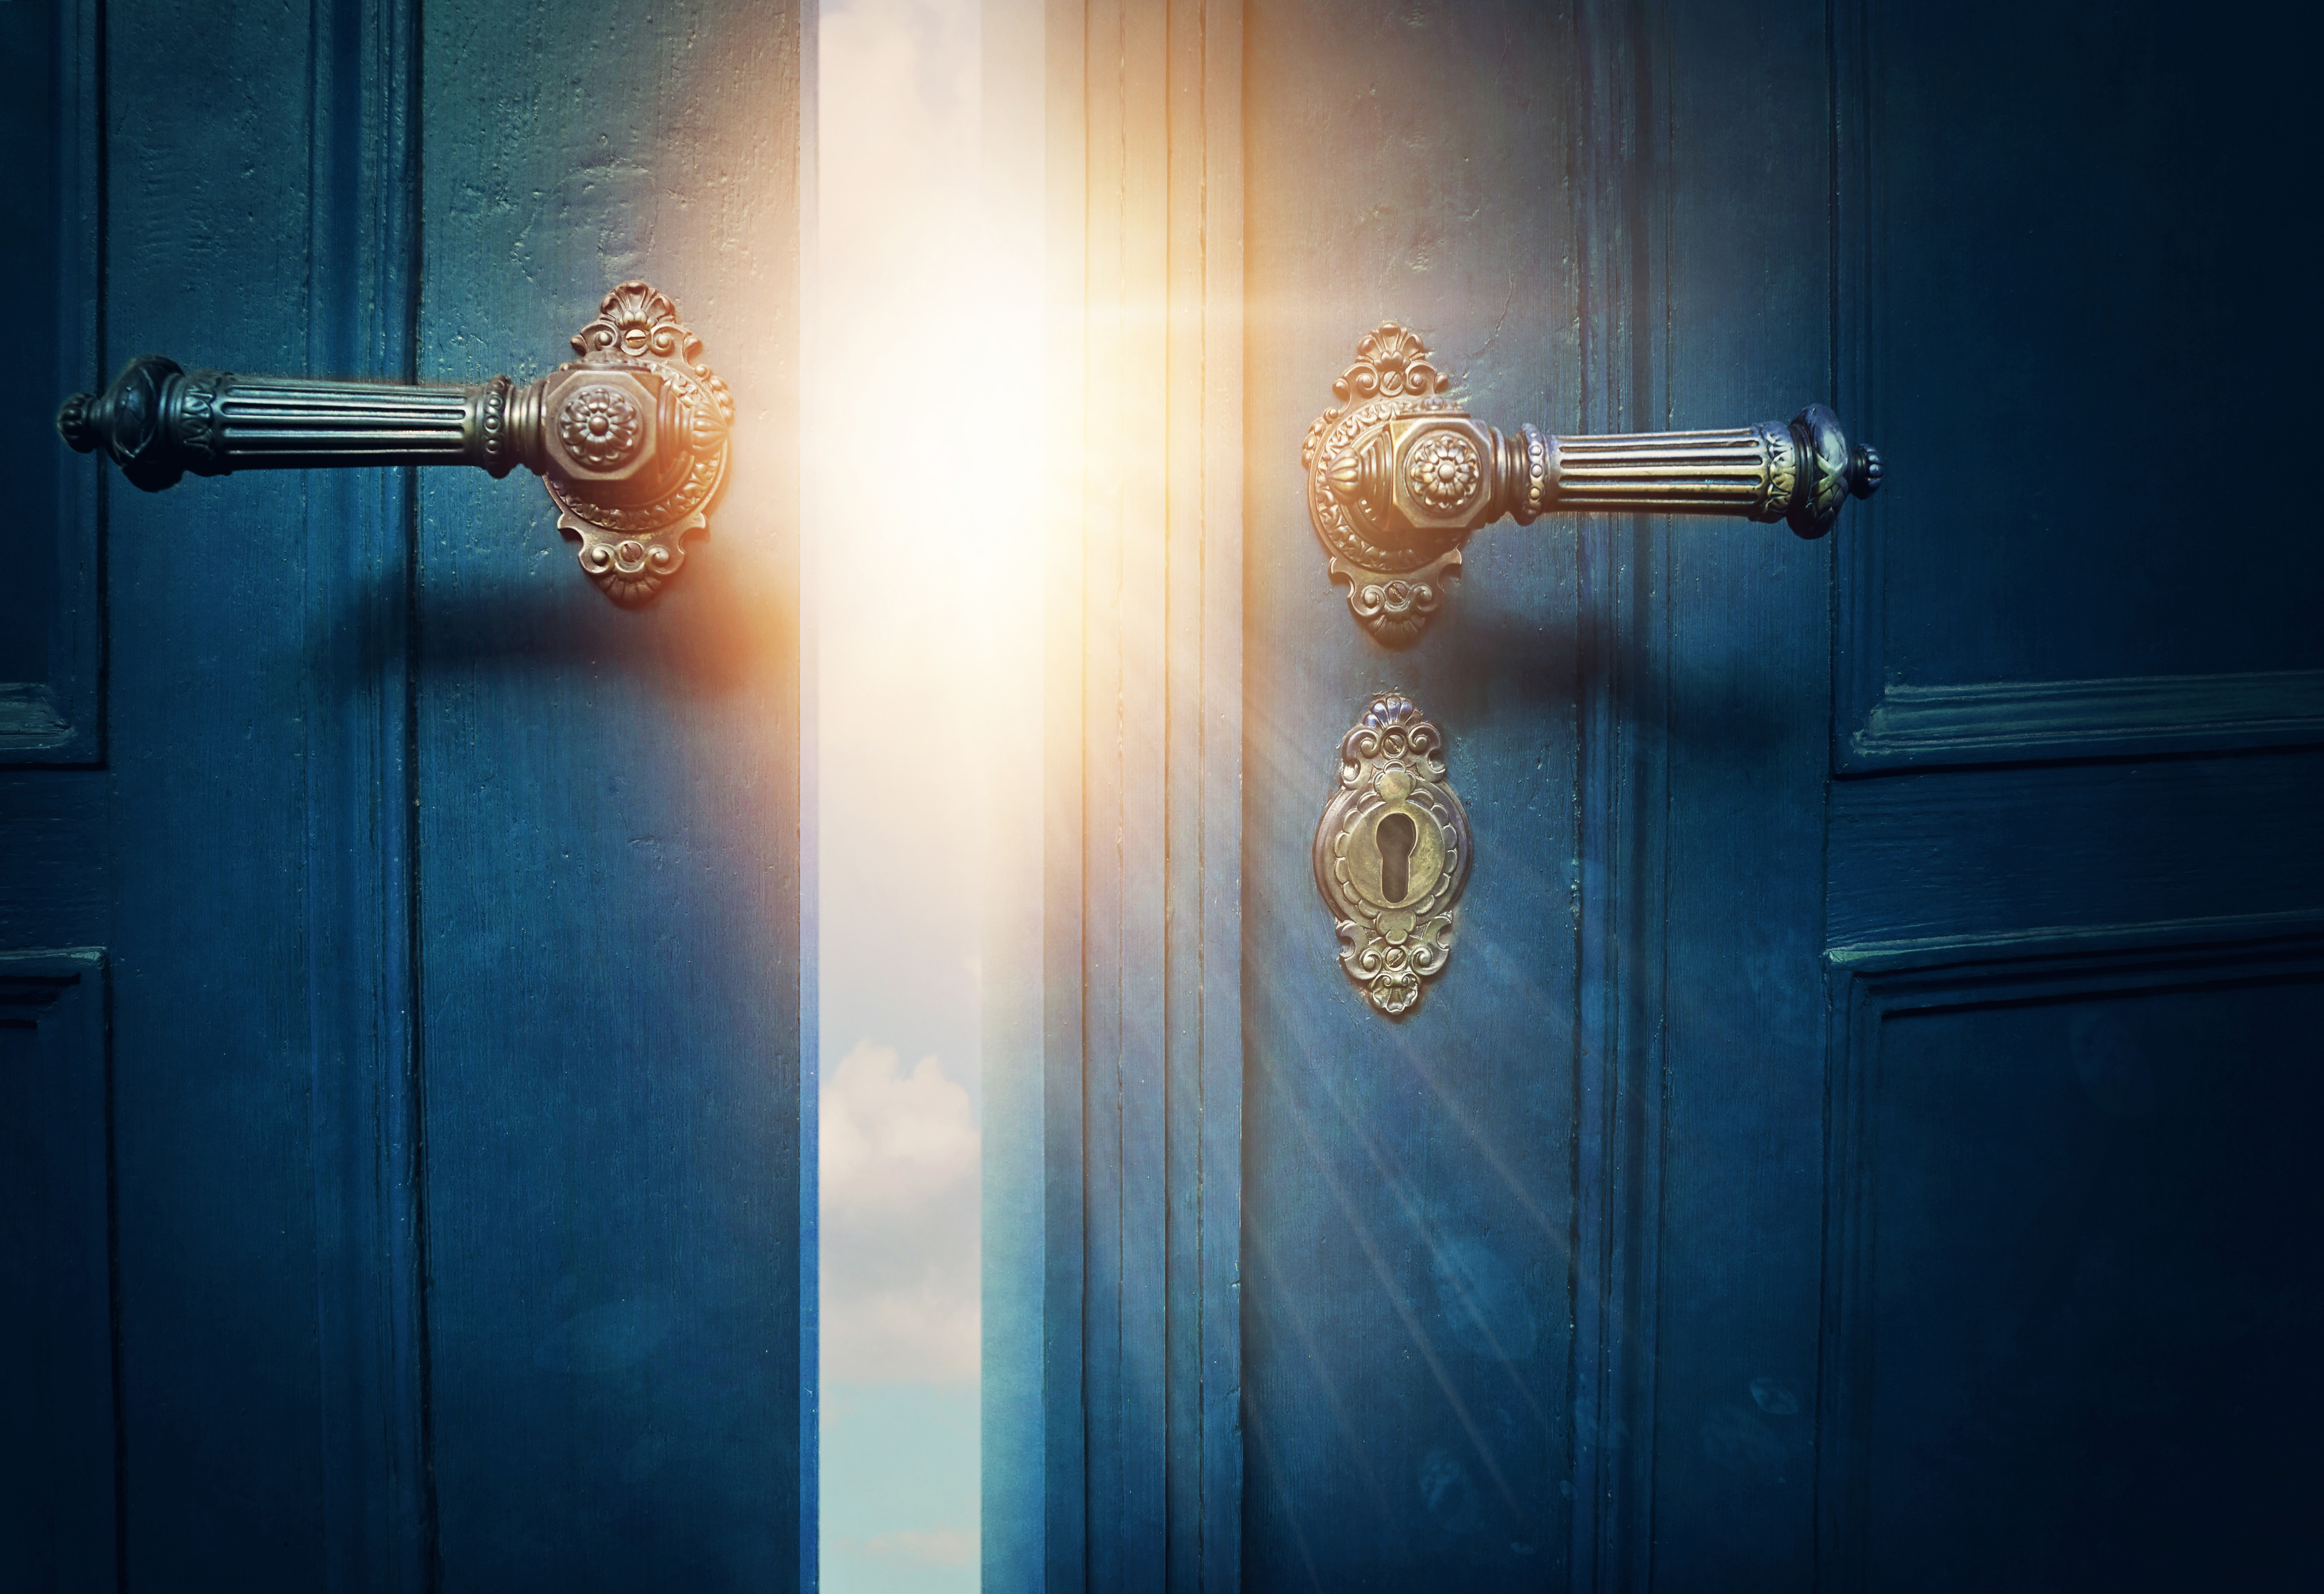 Double doors opening with a bright sky on the other side